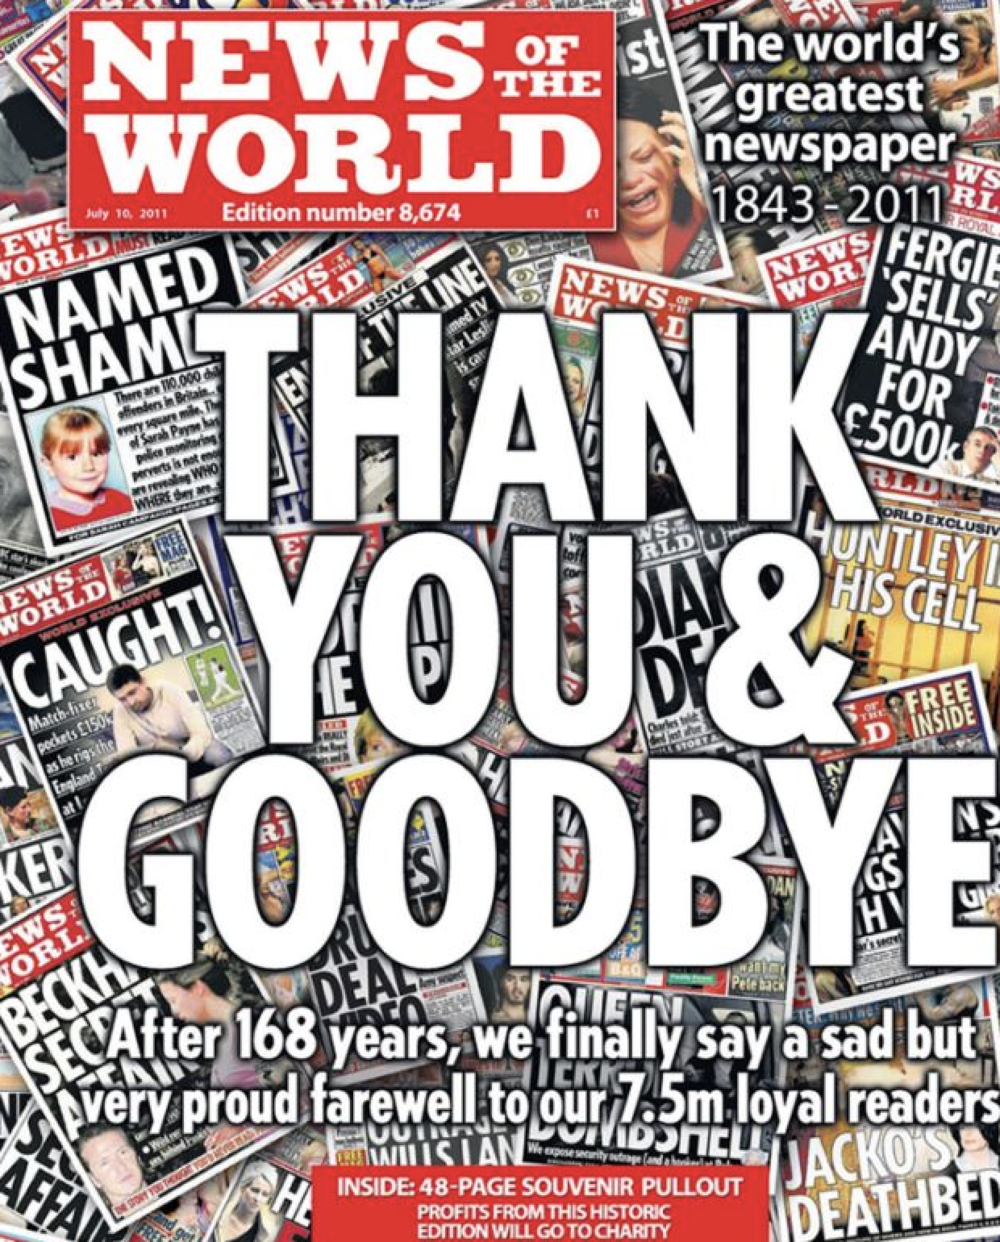 Defunct: once the biggest selling paper in the English language, the NotW closed in disgrace in 2011 as the phone hacking scandal erupted